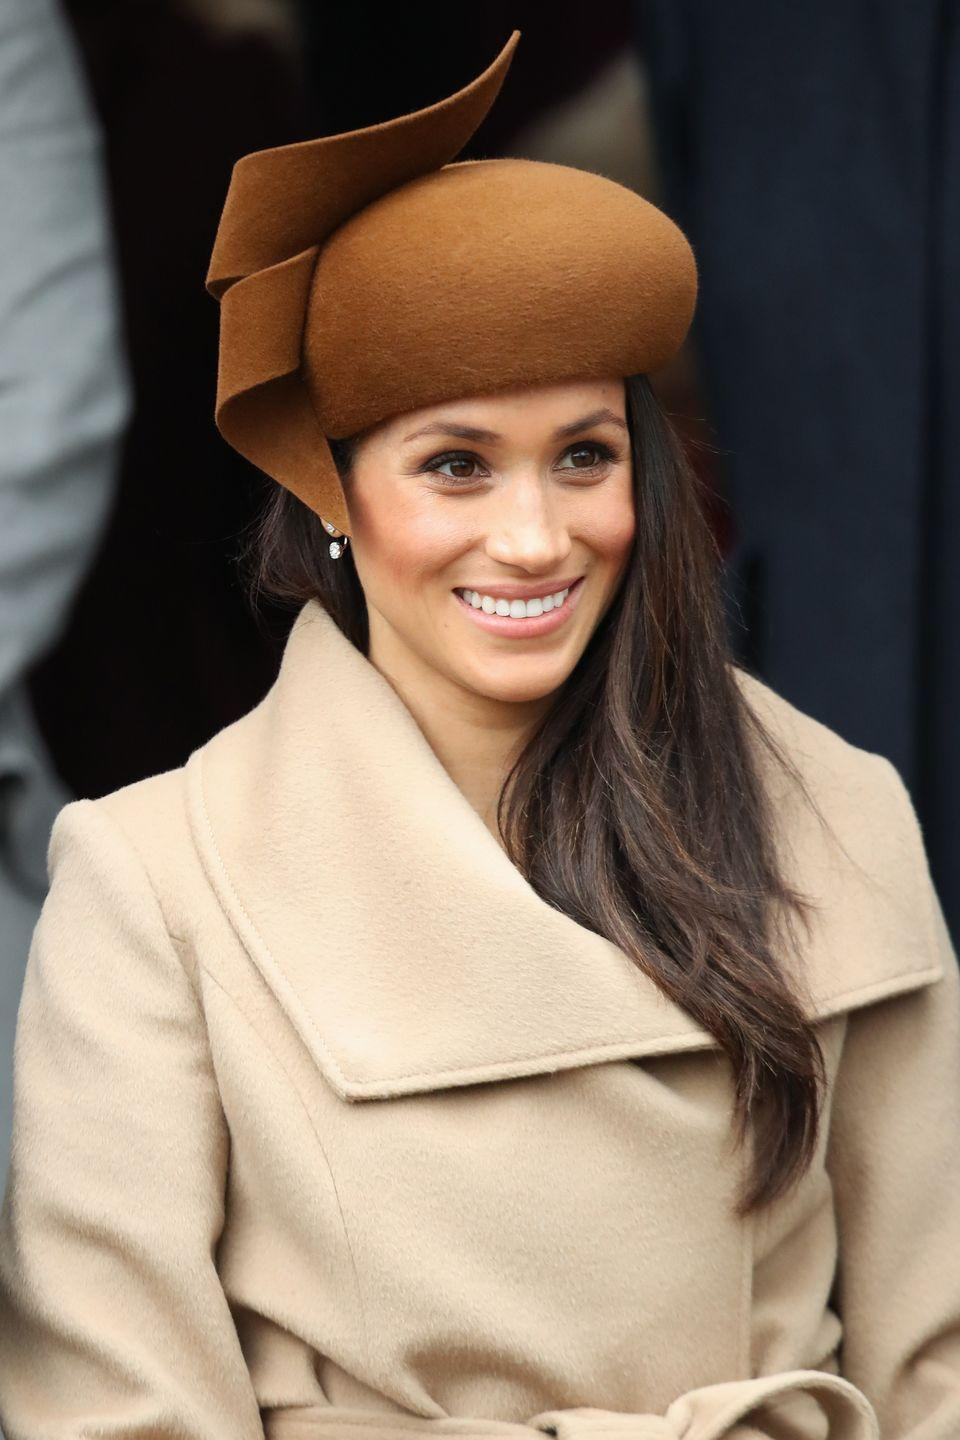 """<p>Royal women are also expected to wear """"neat and natural"""" makeup and keep it to a minimum. However, during Meghan's 2018 Christmas with the royal fam, she wore relatively heavy (and extremely pretty!) blush on her cheekbones. I'm into it, tbh. </p>"""